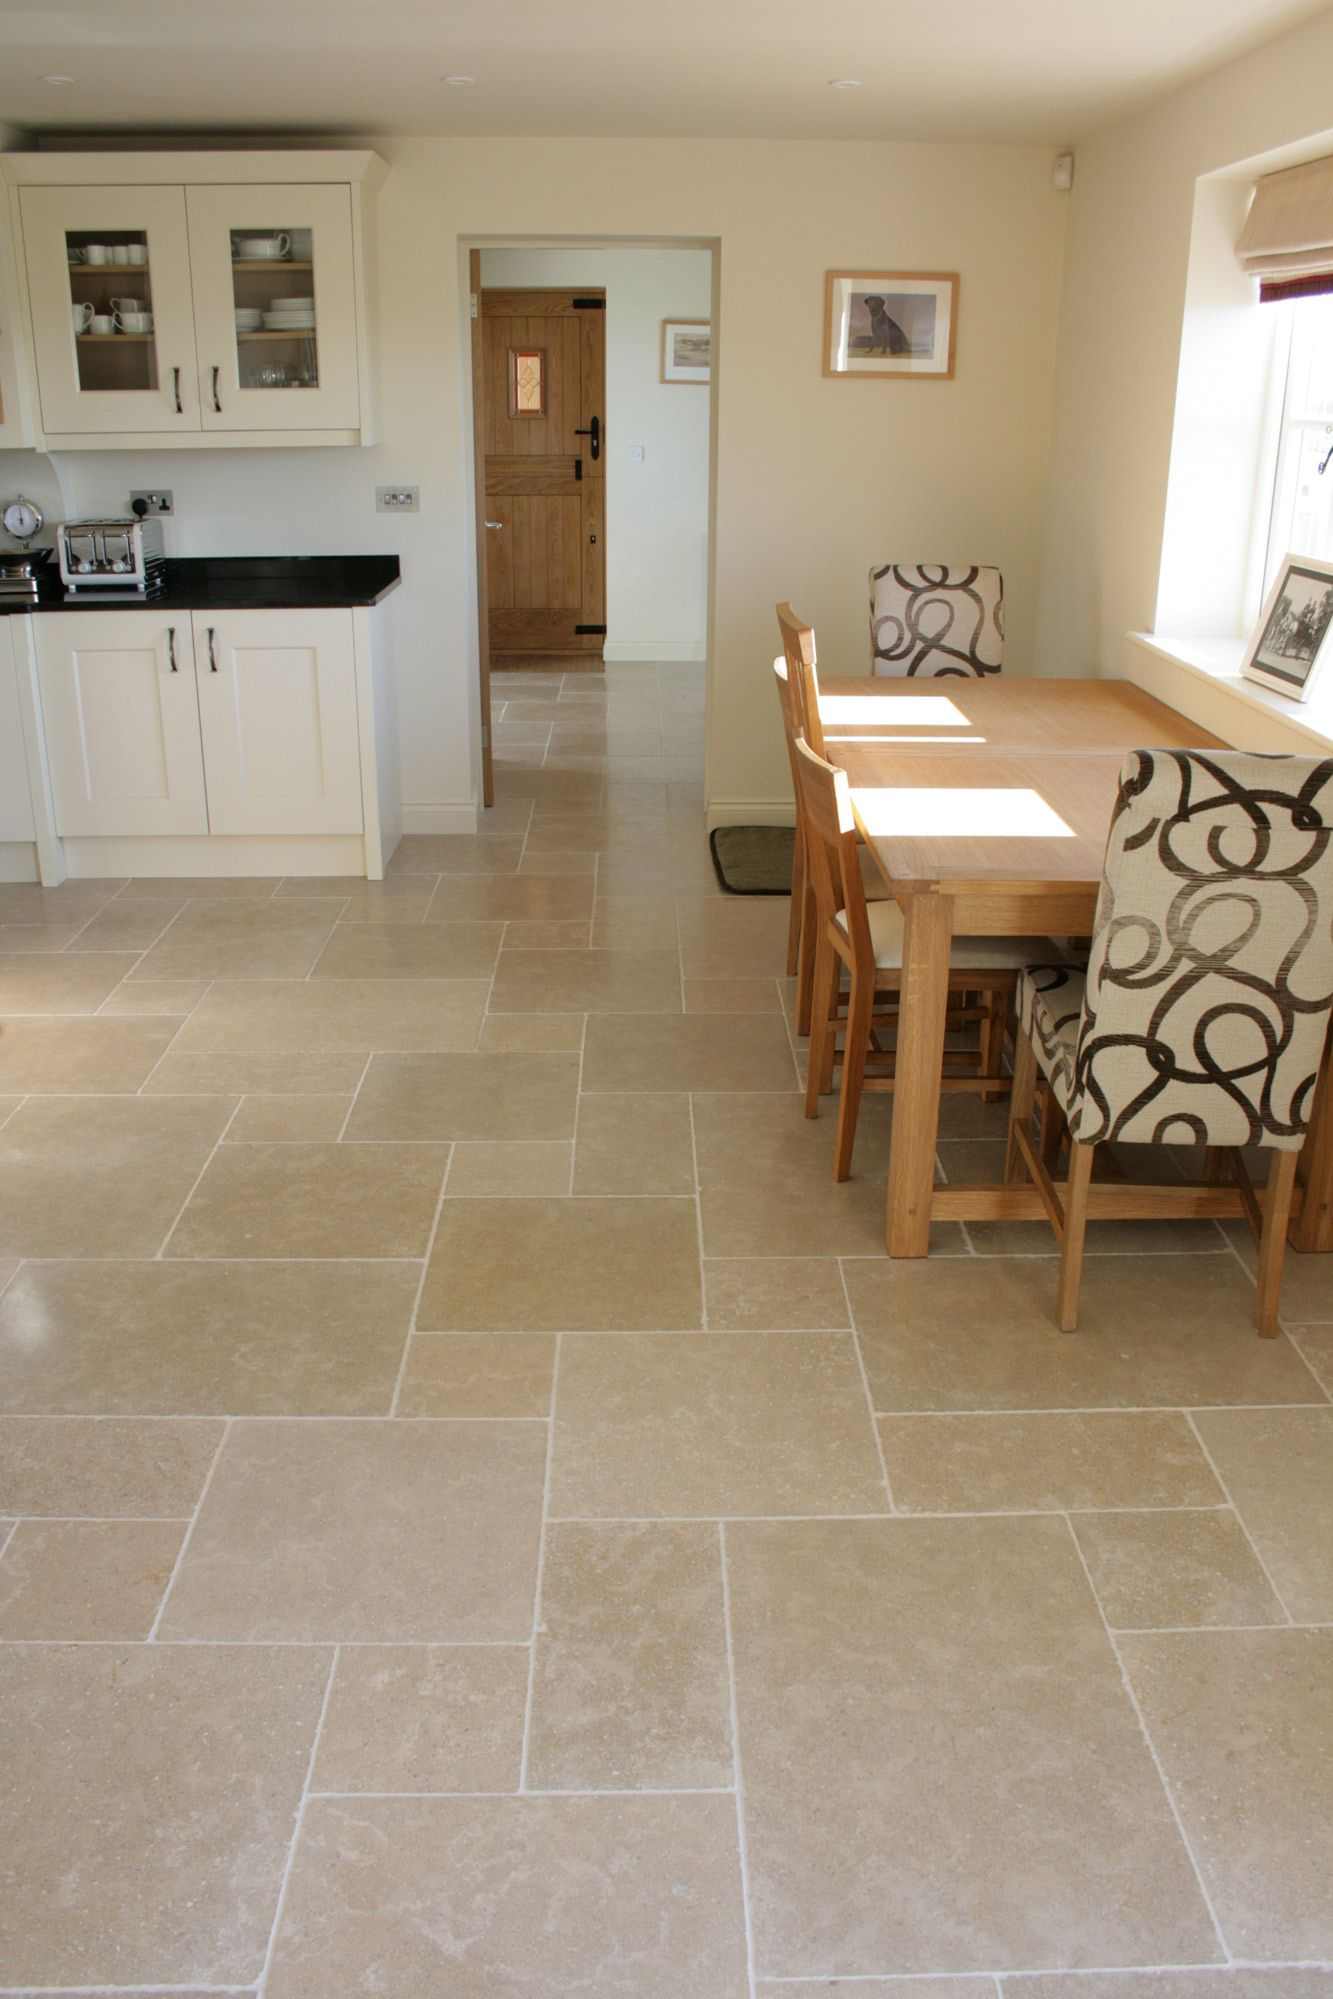 dijon-tumbled-limestone-floor-tiles-large-pattern---mrs-bucknall